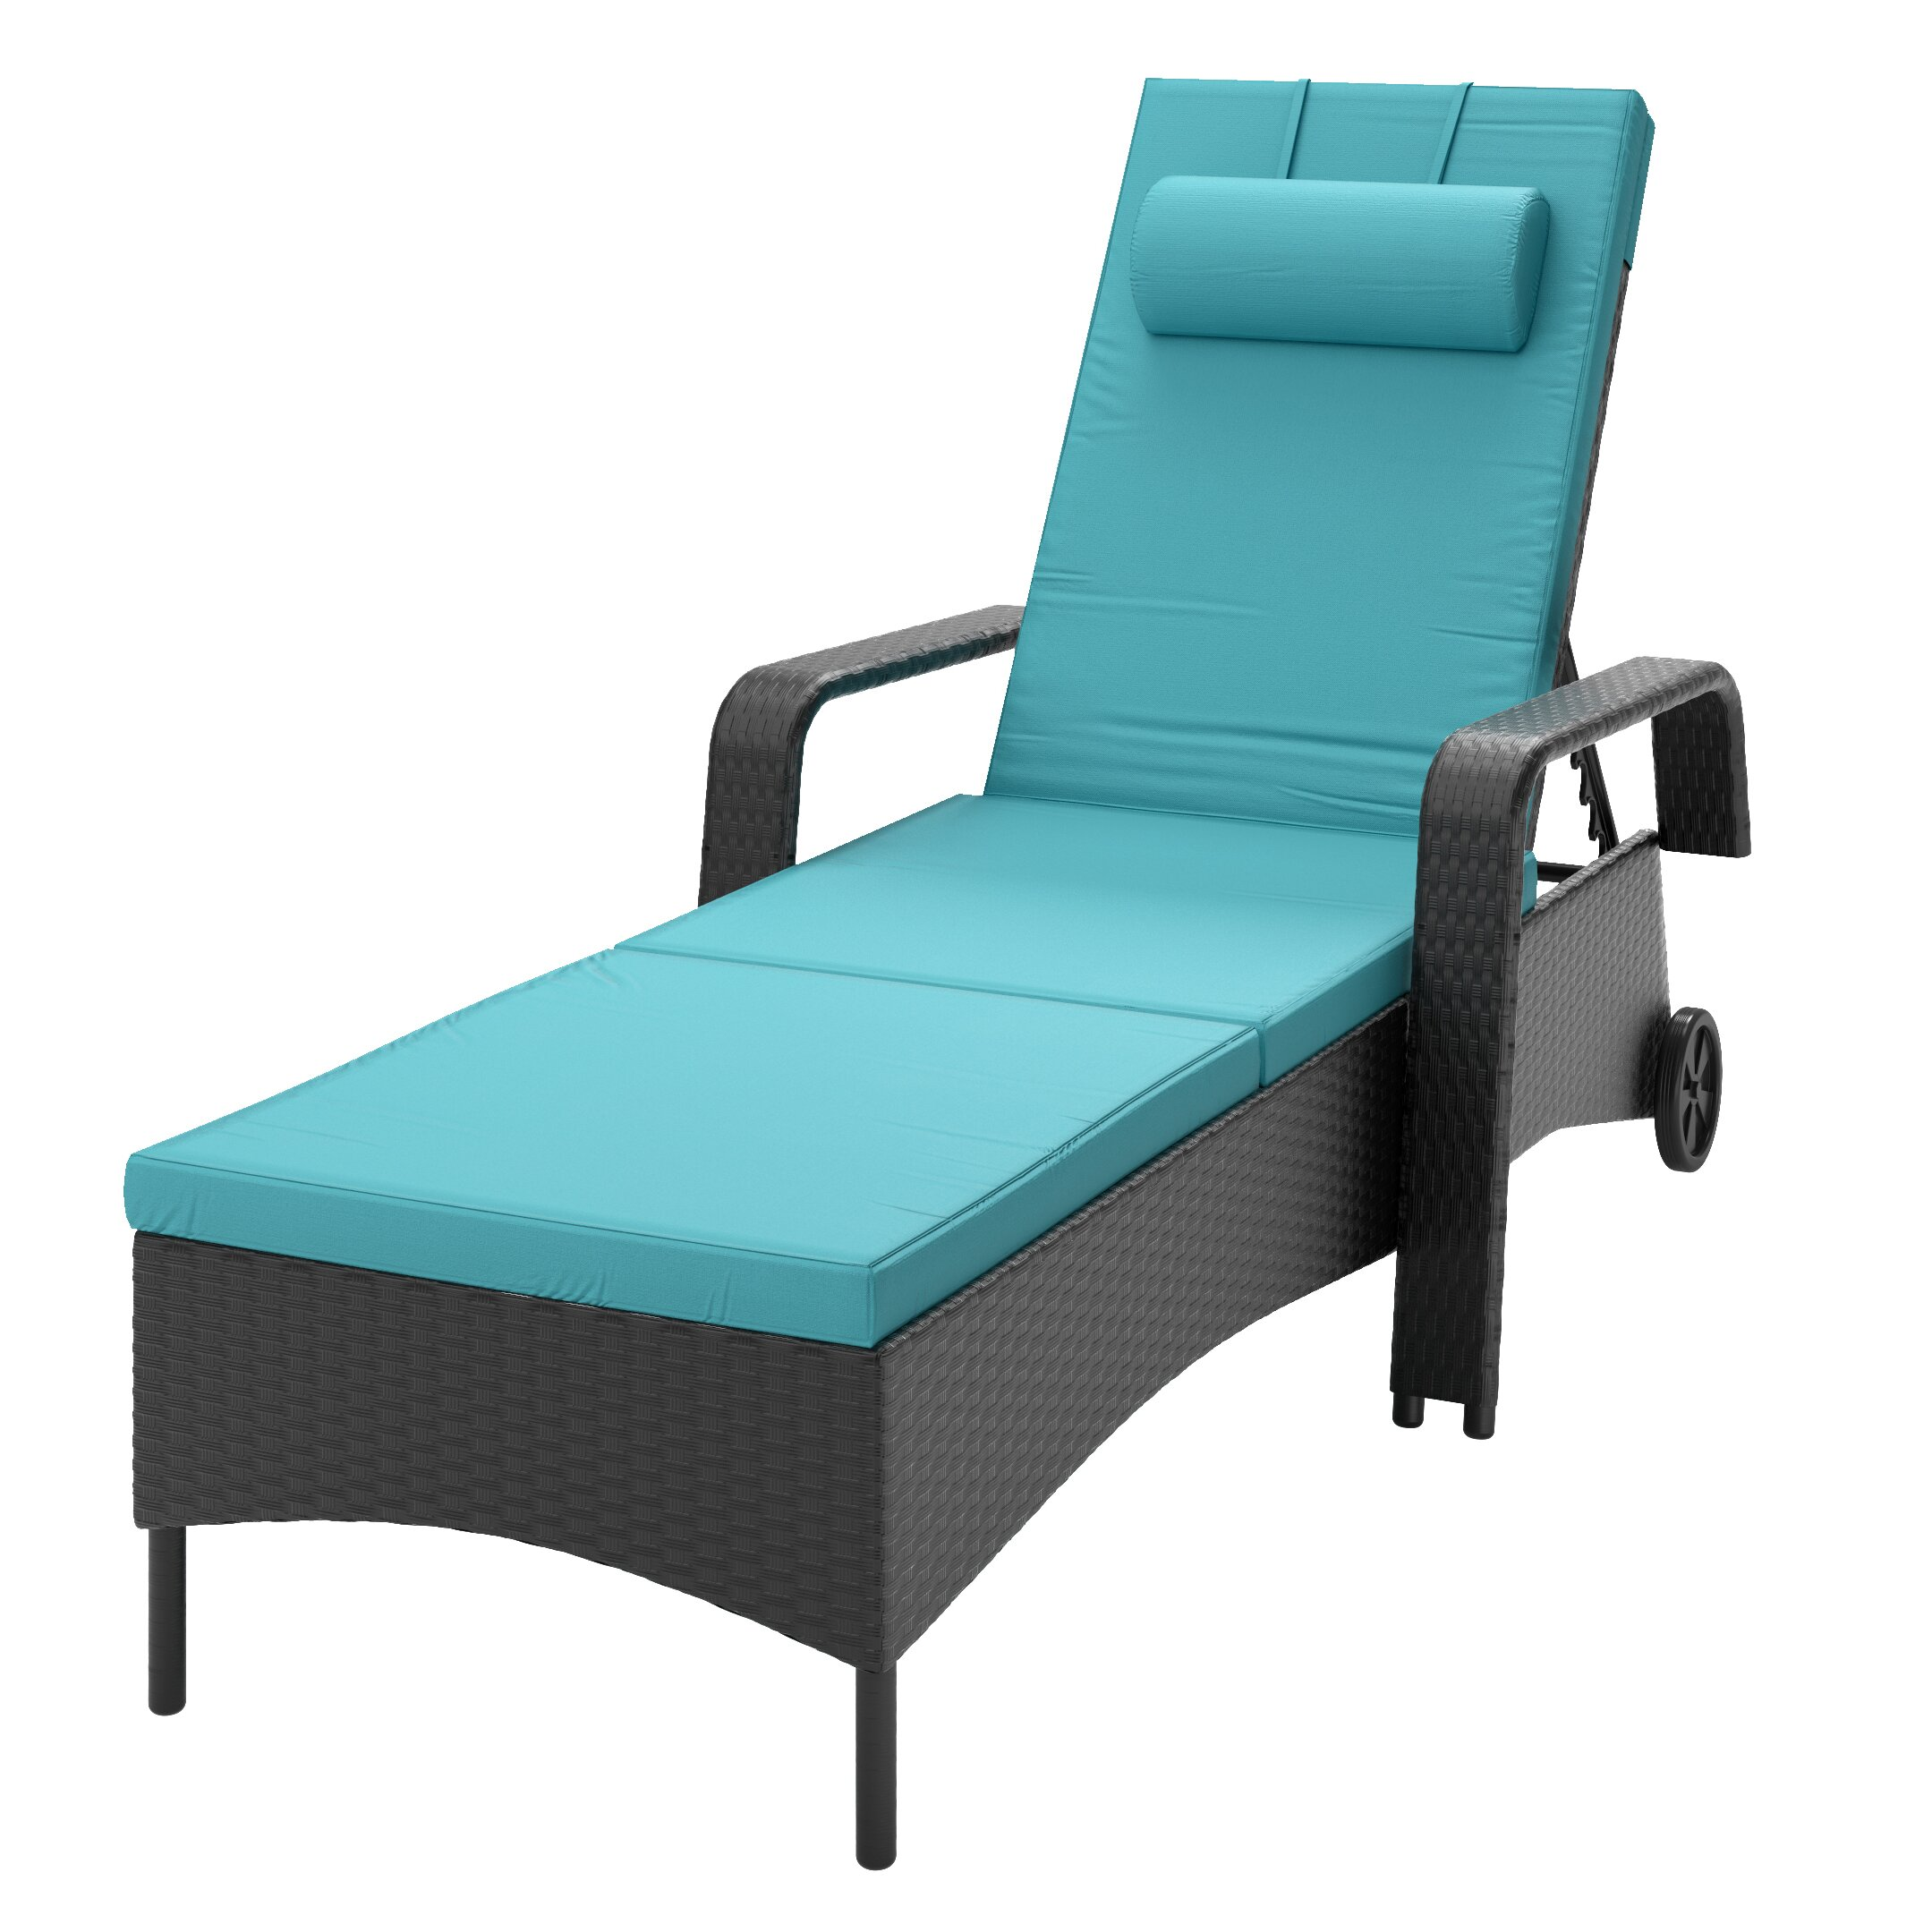 Dcor design riverside patio chaise lounge with cushion for Chaise lounge cushion sale